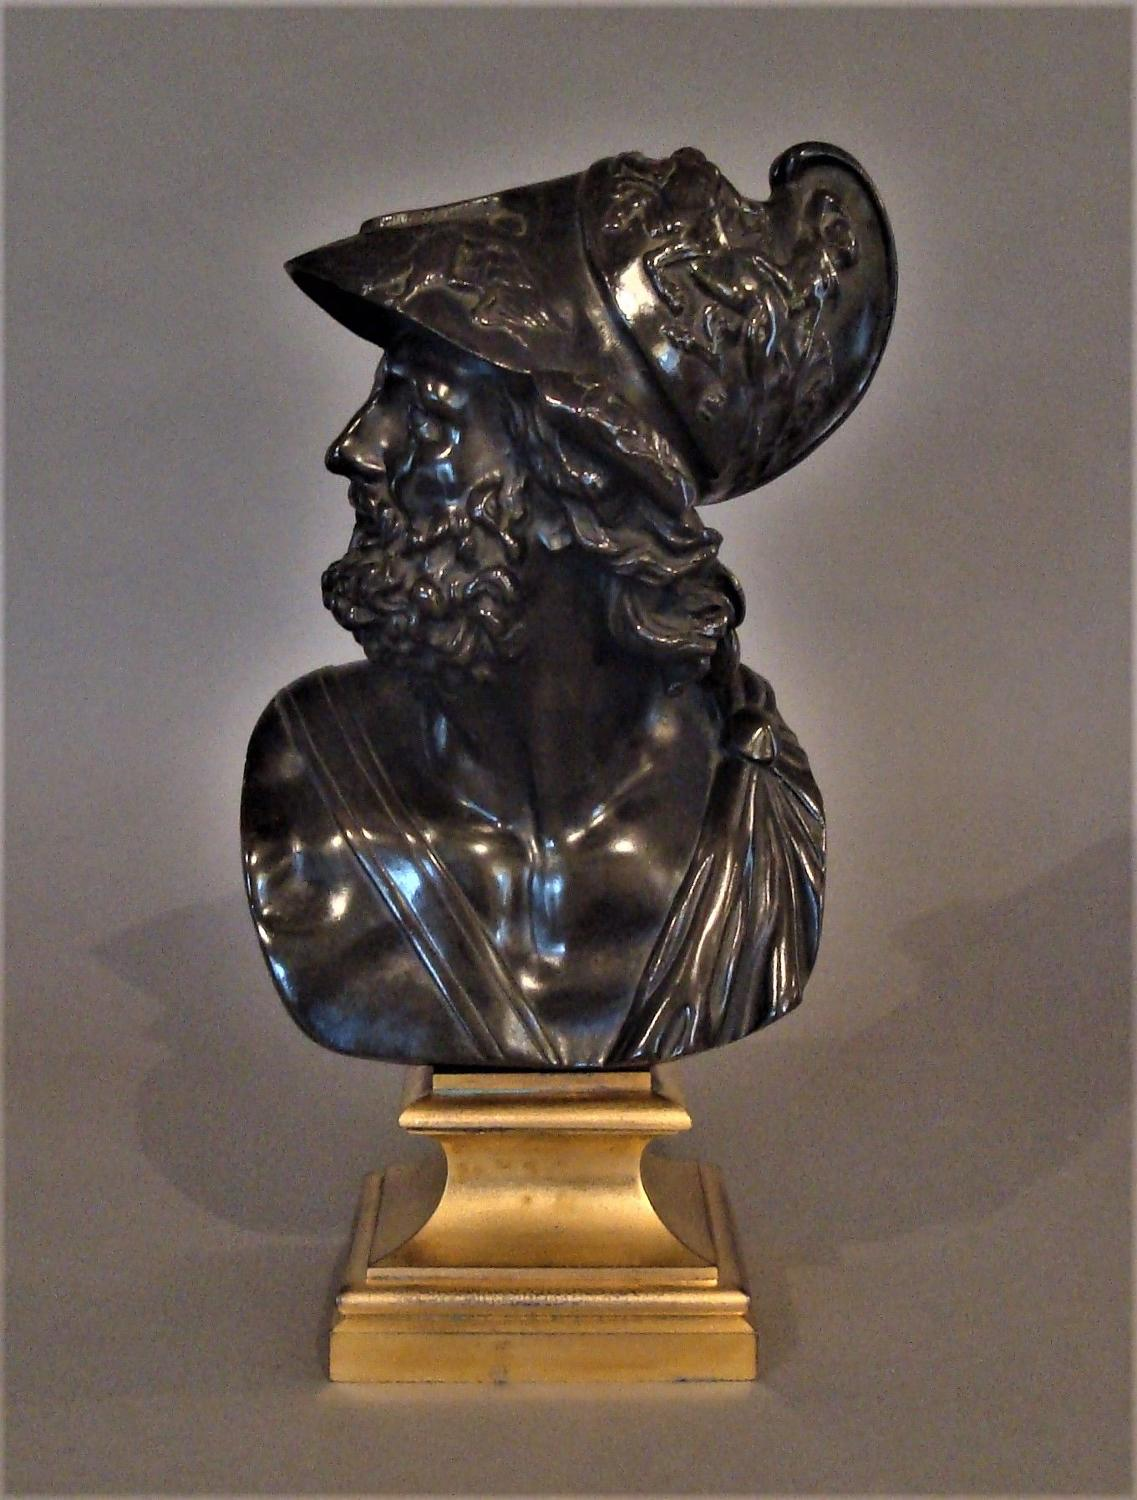 C19th bronze Grand Tour bust of Ajax